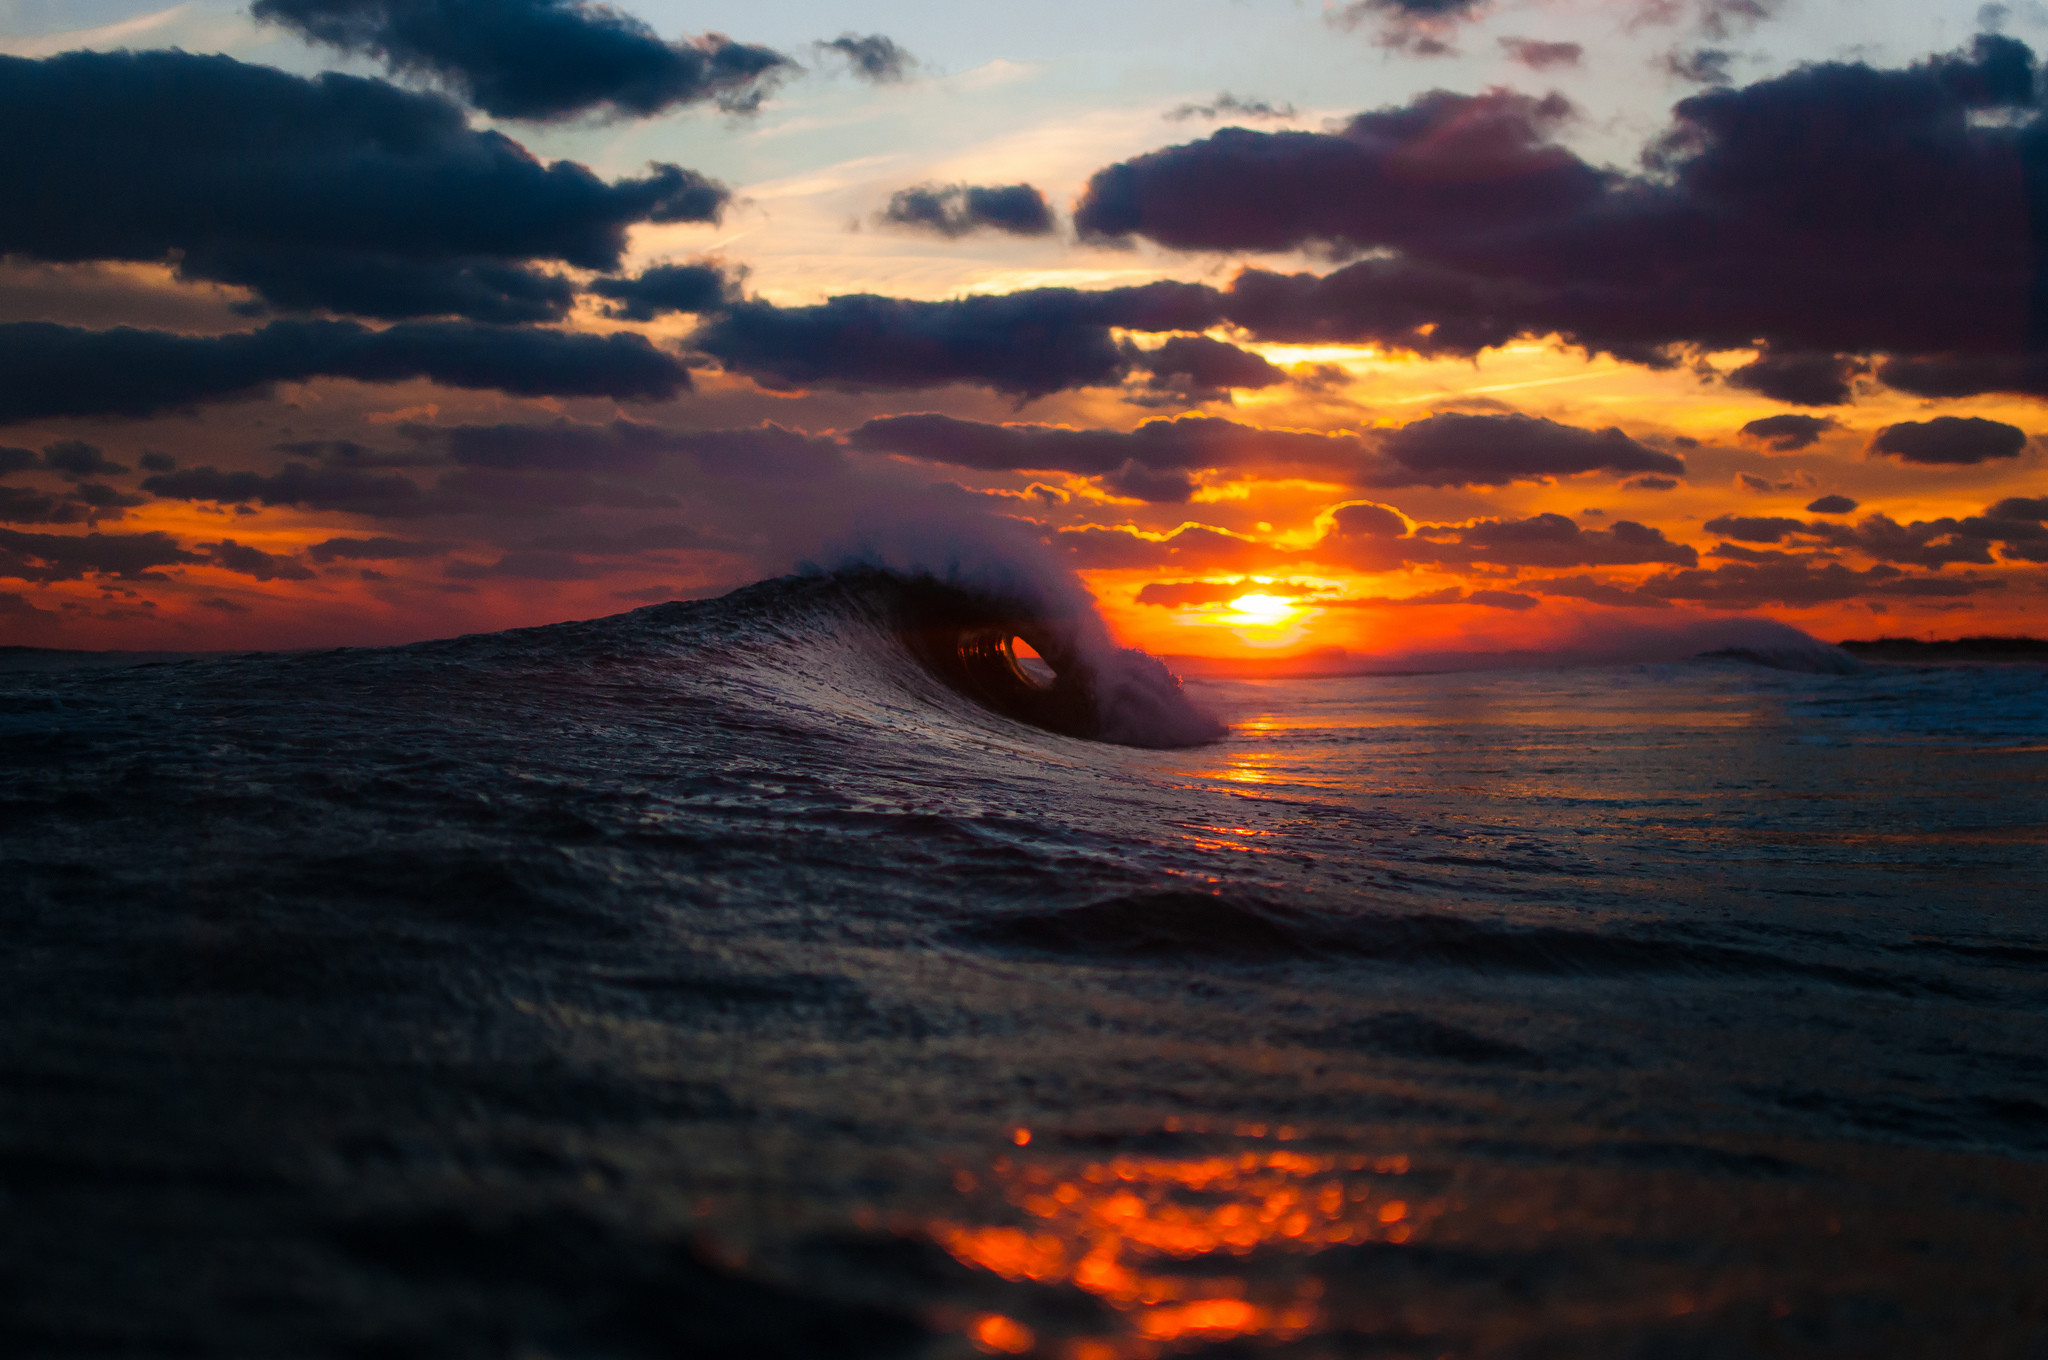 Res: 2048x1360, sunset themes ocean waves sunset themes ocean waves sunset photos